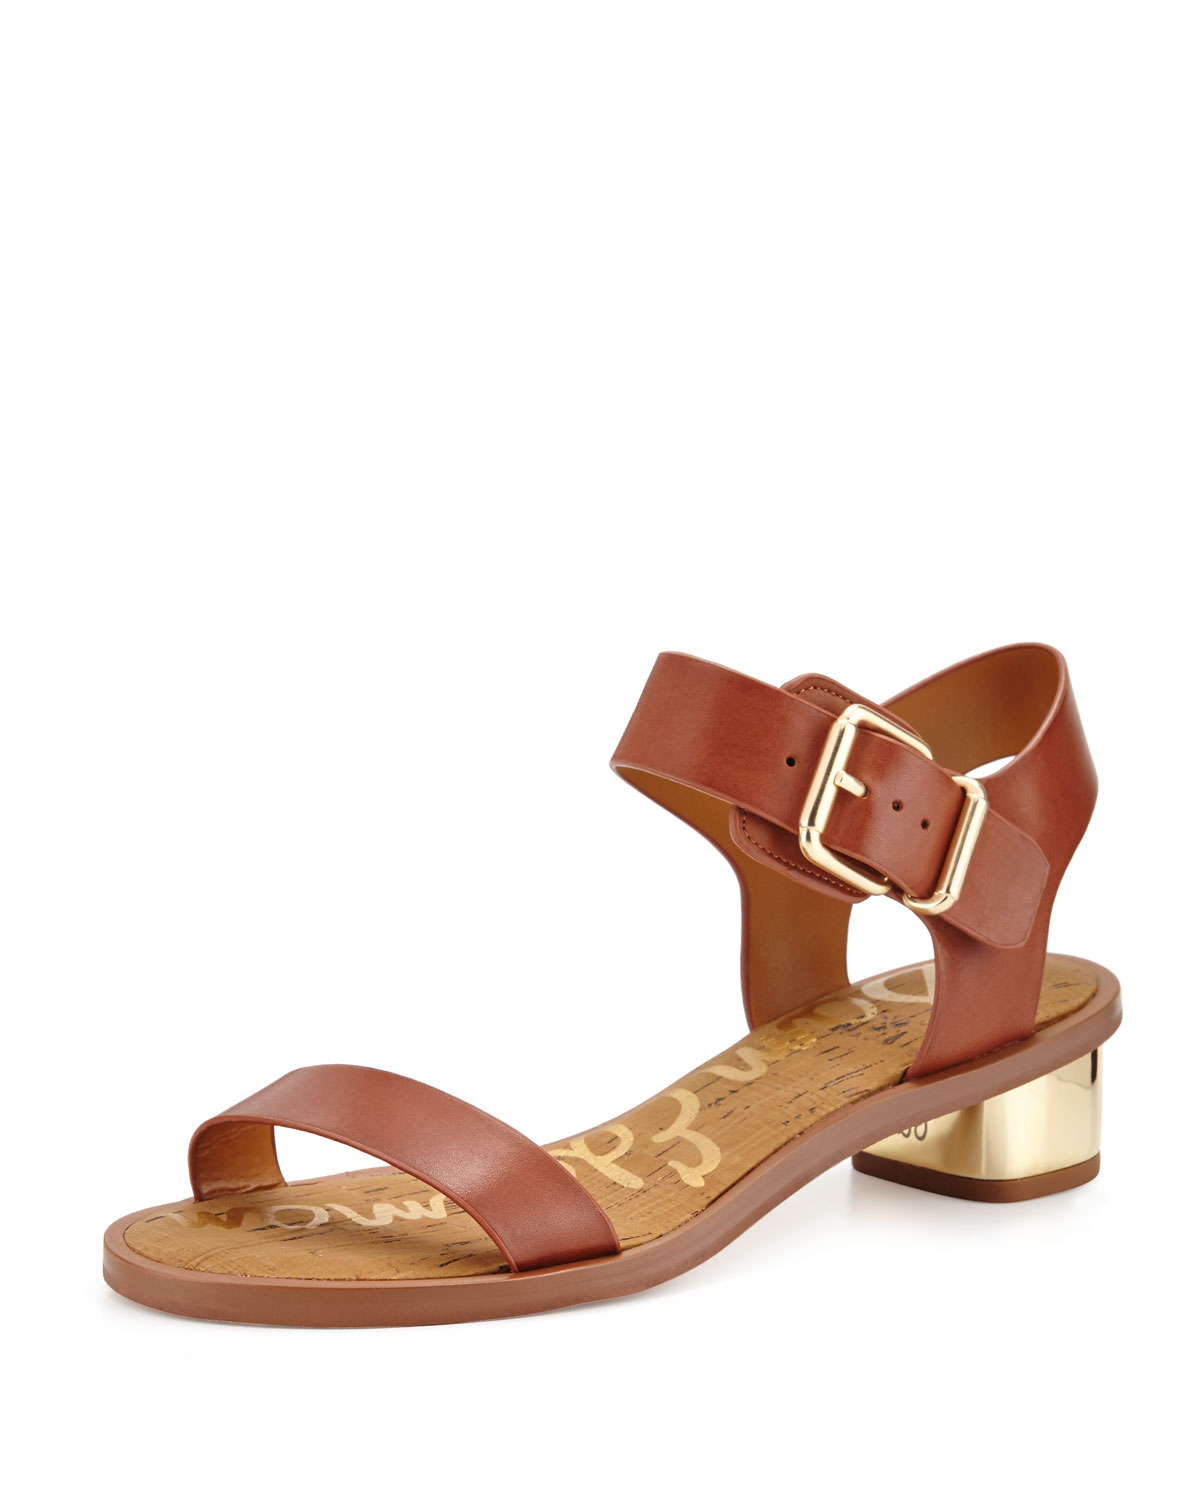 8cfeab9545b1ee Sam Edelman Trina Leather City Sandal